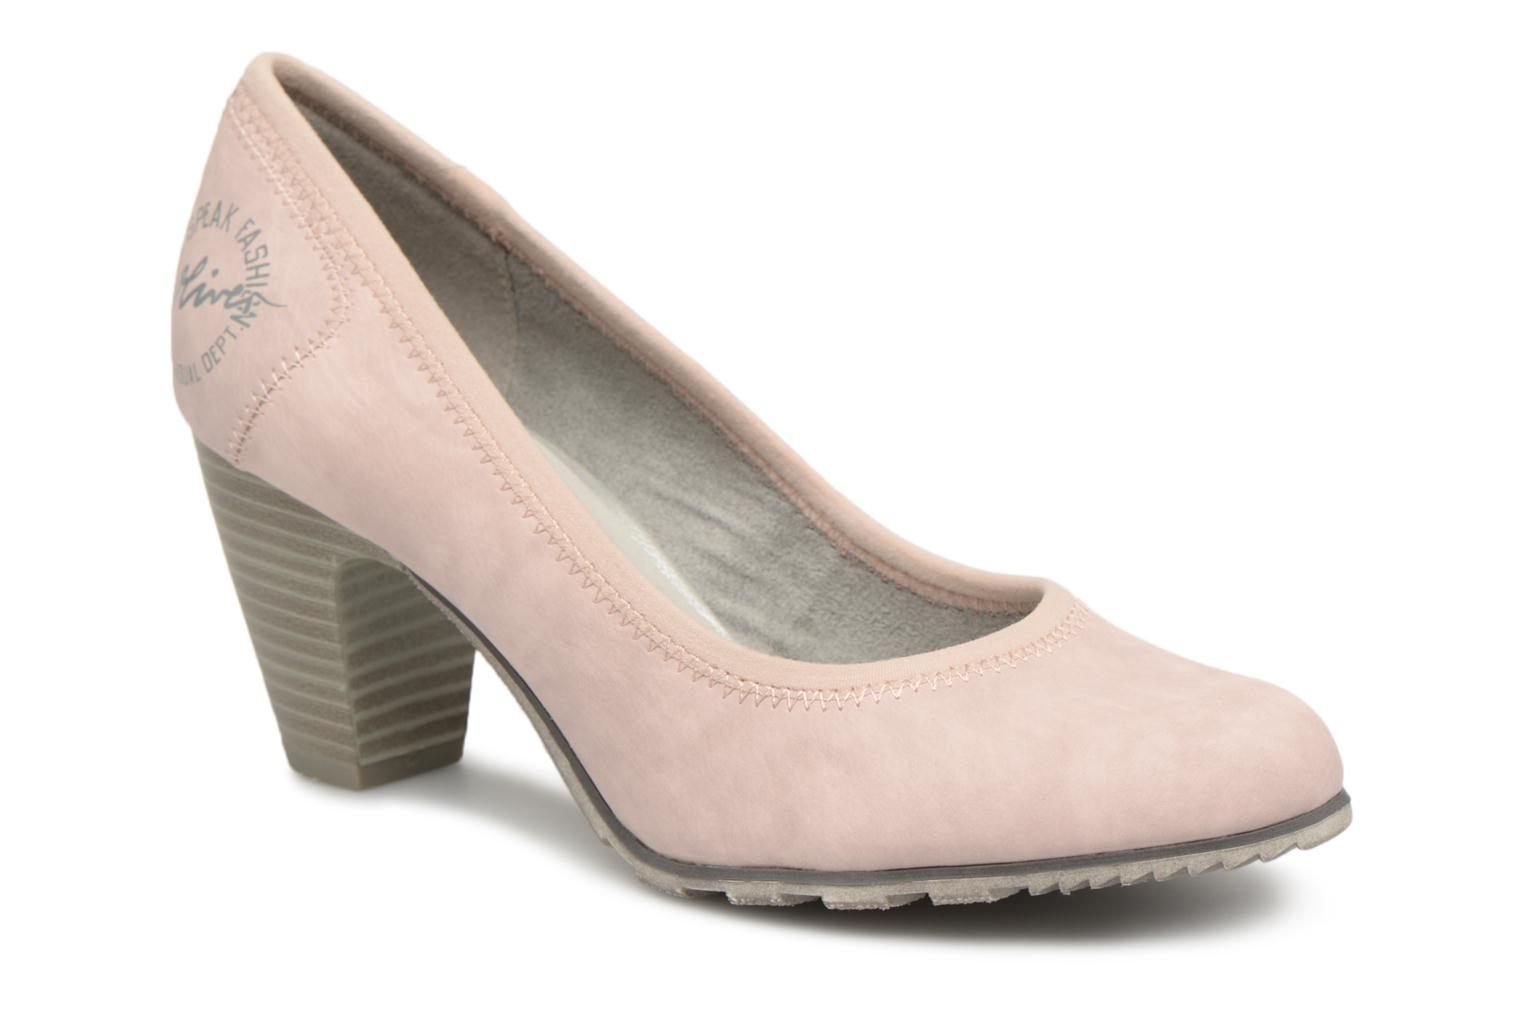 Marques Chaussure femme S.Oliver femme Nyelle 2 Off white